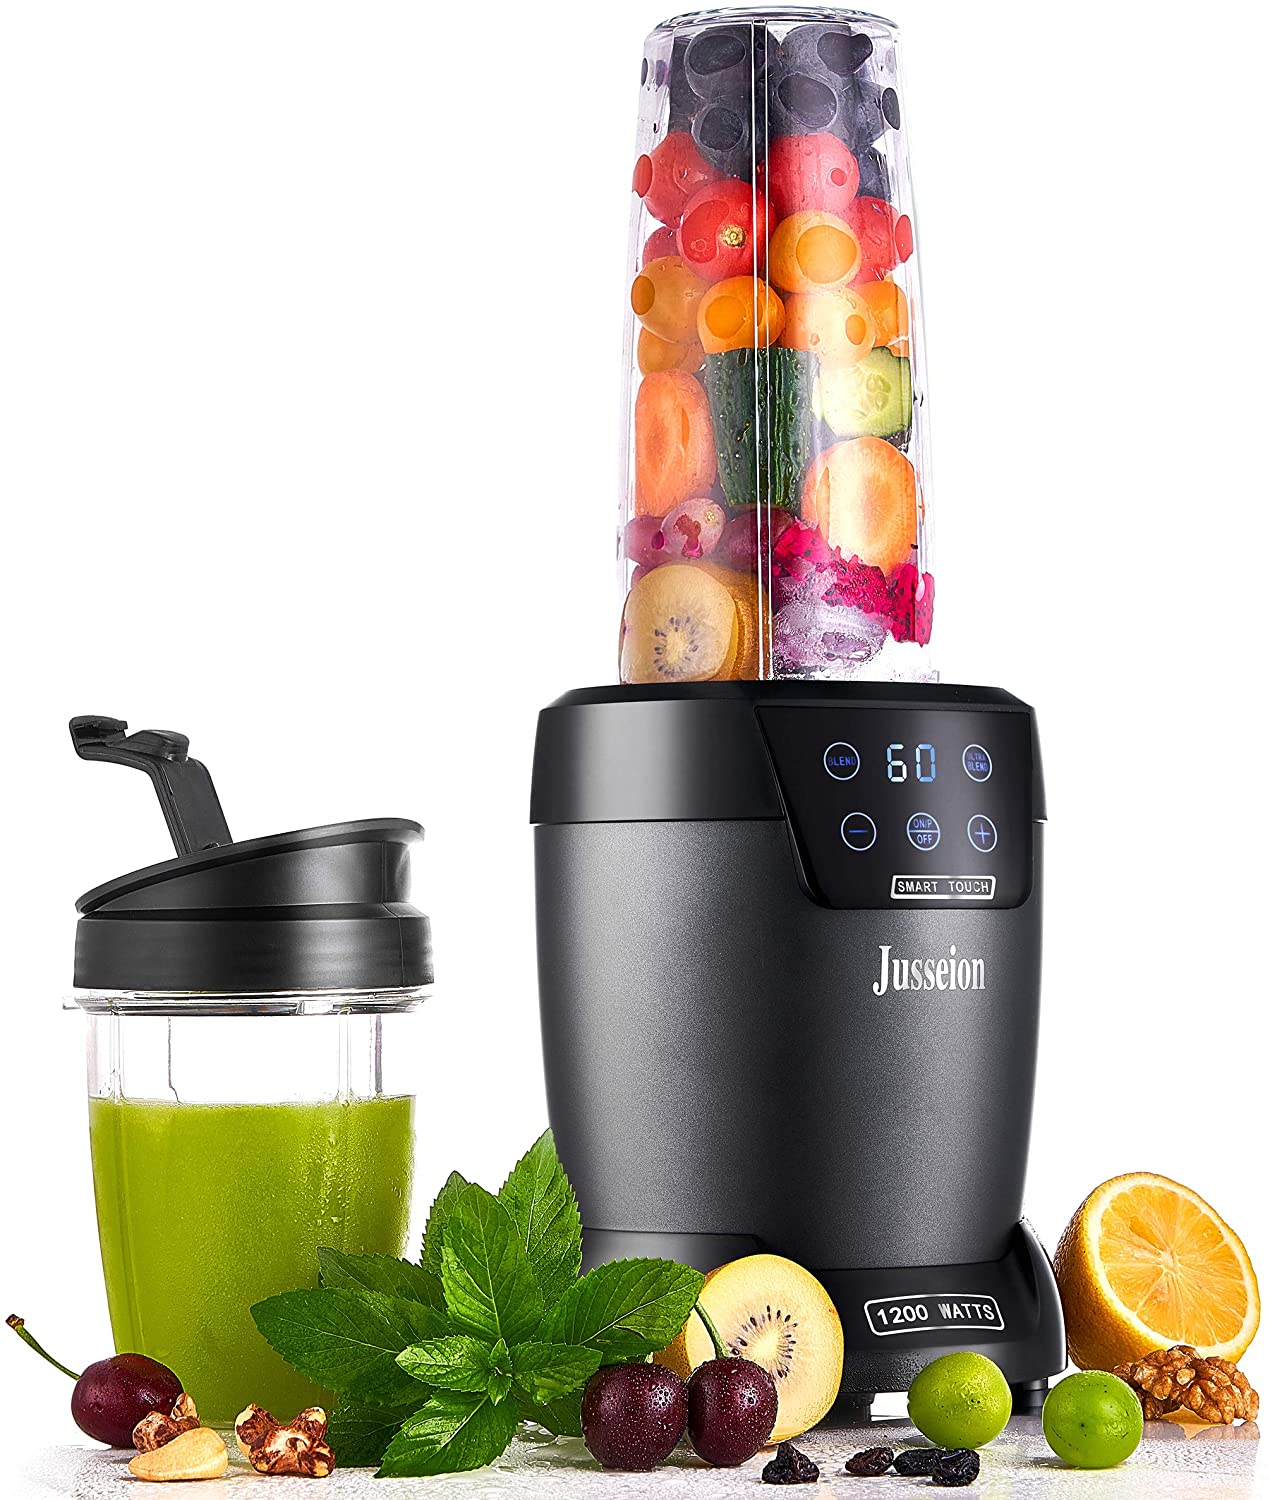 Jusseion Auto-Blend Smoothie Blender - 1200W Bullet Blender for Shakes and Smoothies - Easy Clean Countertop Blender with Touch Screen and Timer - 18 and 35 Ounce Blender Cups with To-Go Lids